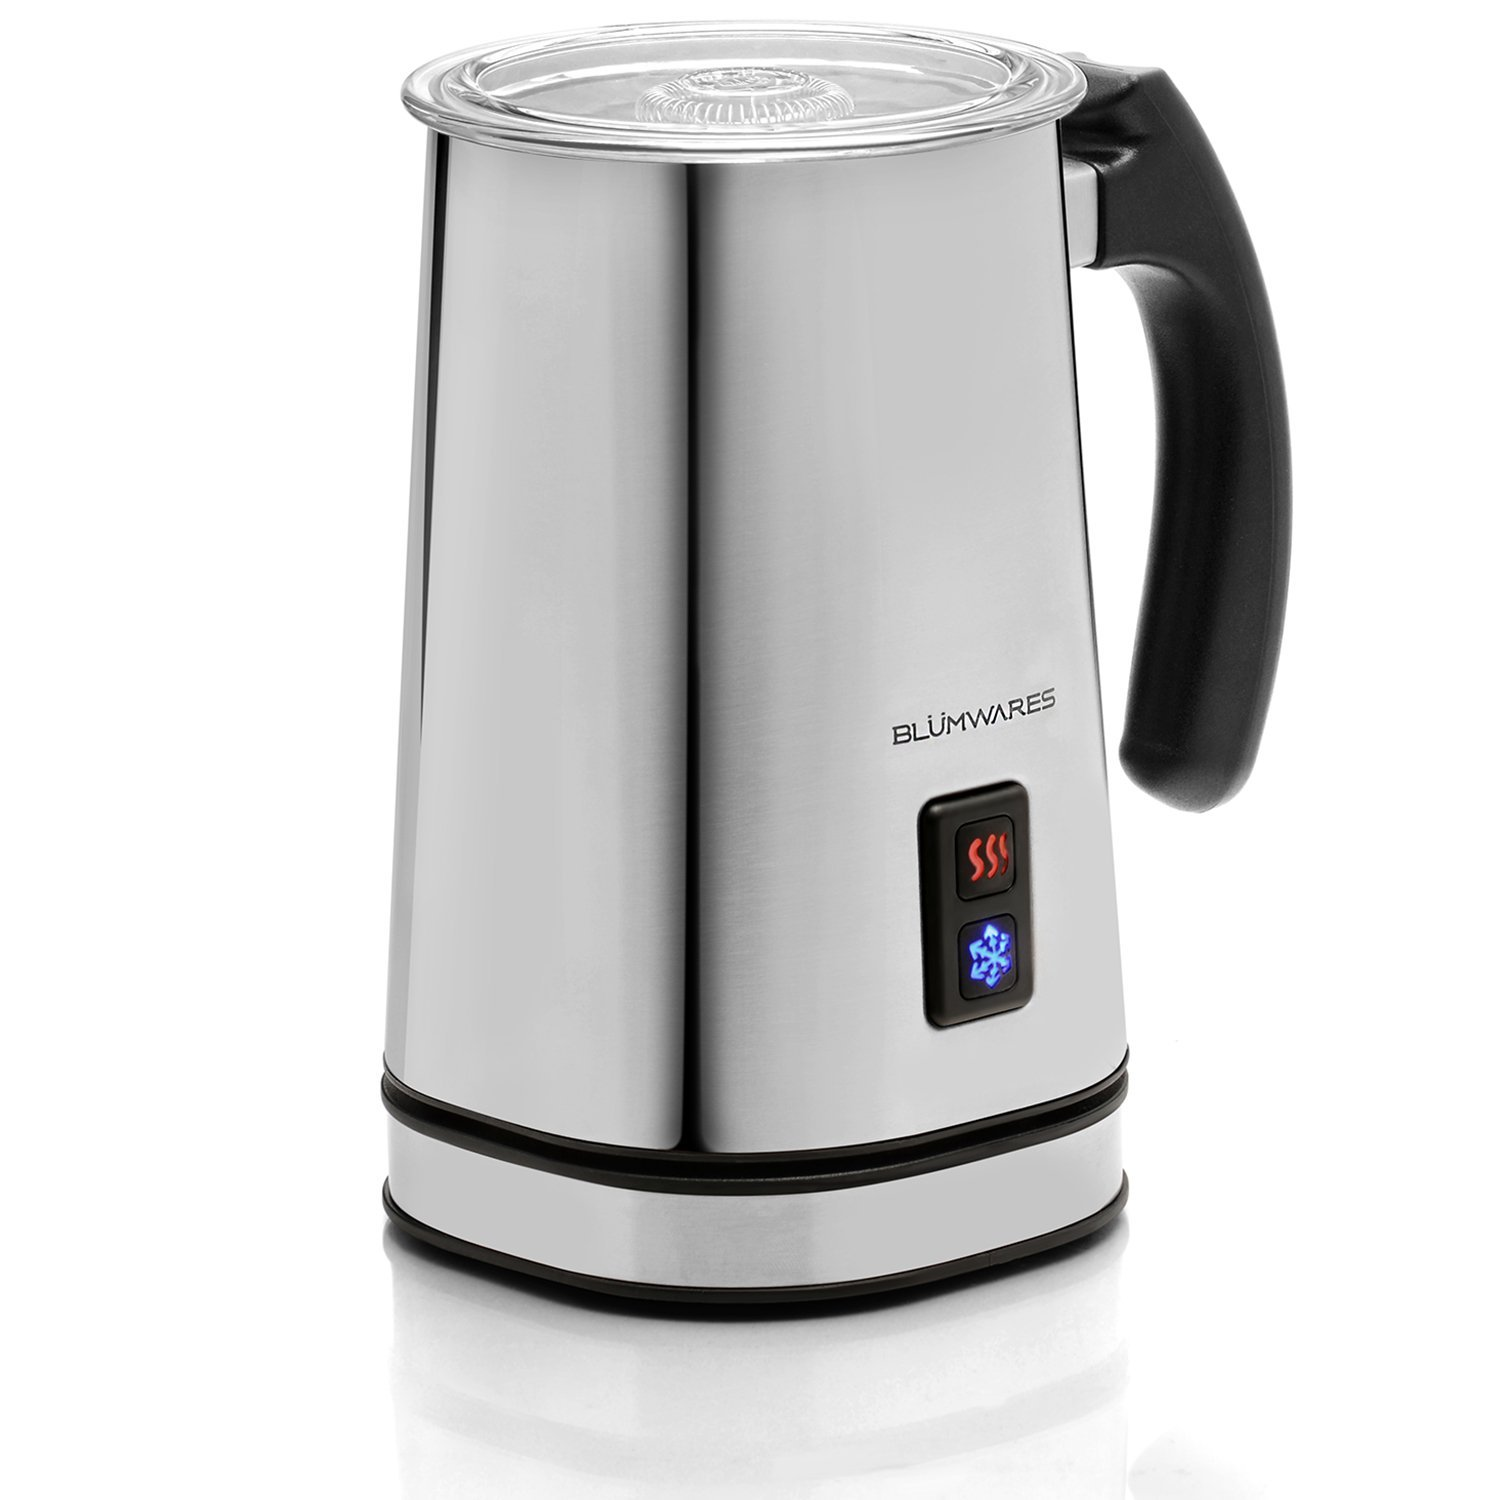 Blümwares Vienne Automatic Milk Frother and Heater